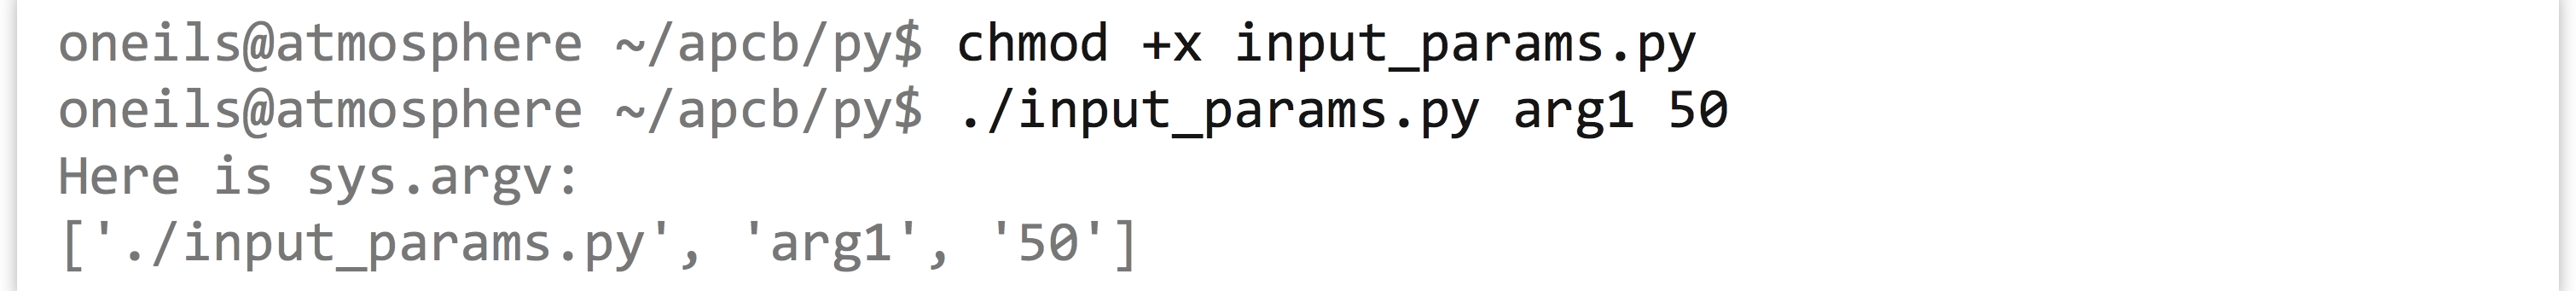 II.7_12_py_68_params_ex_out1